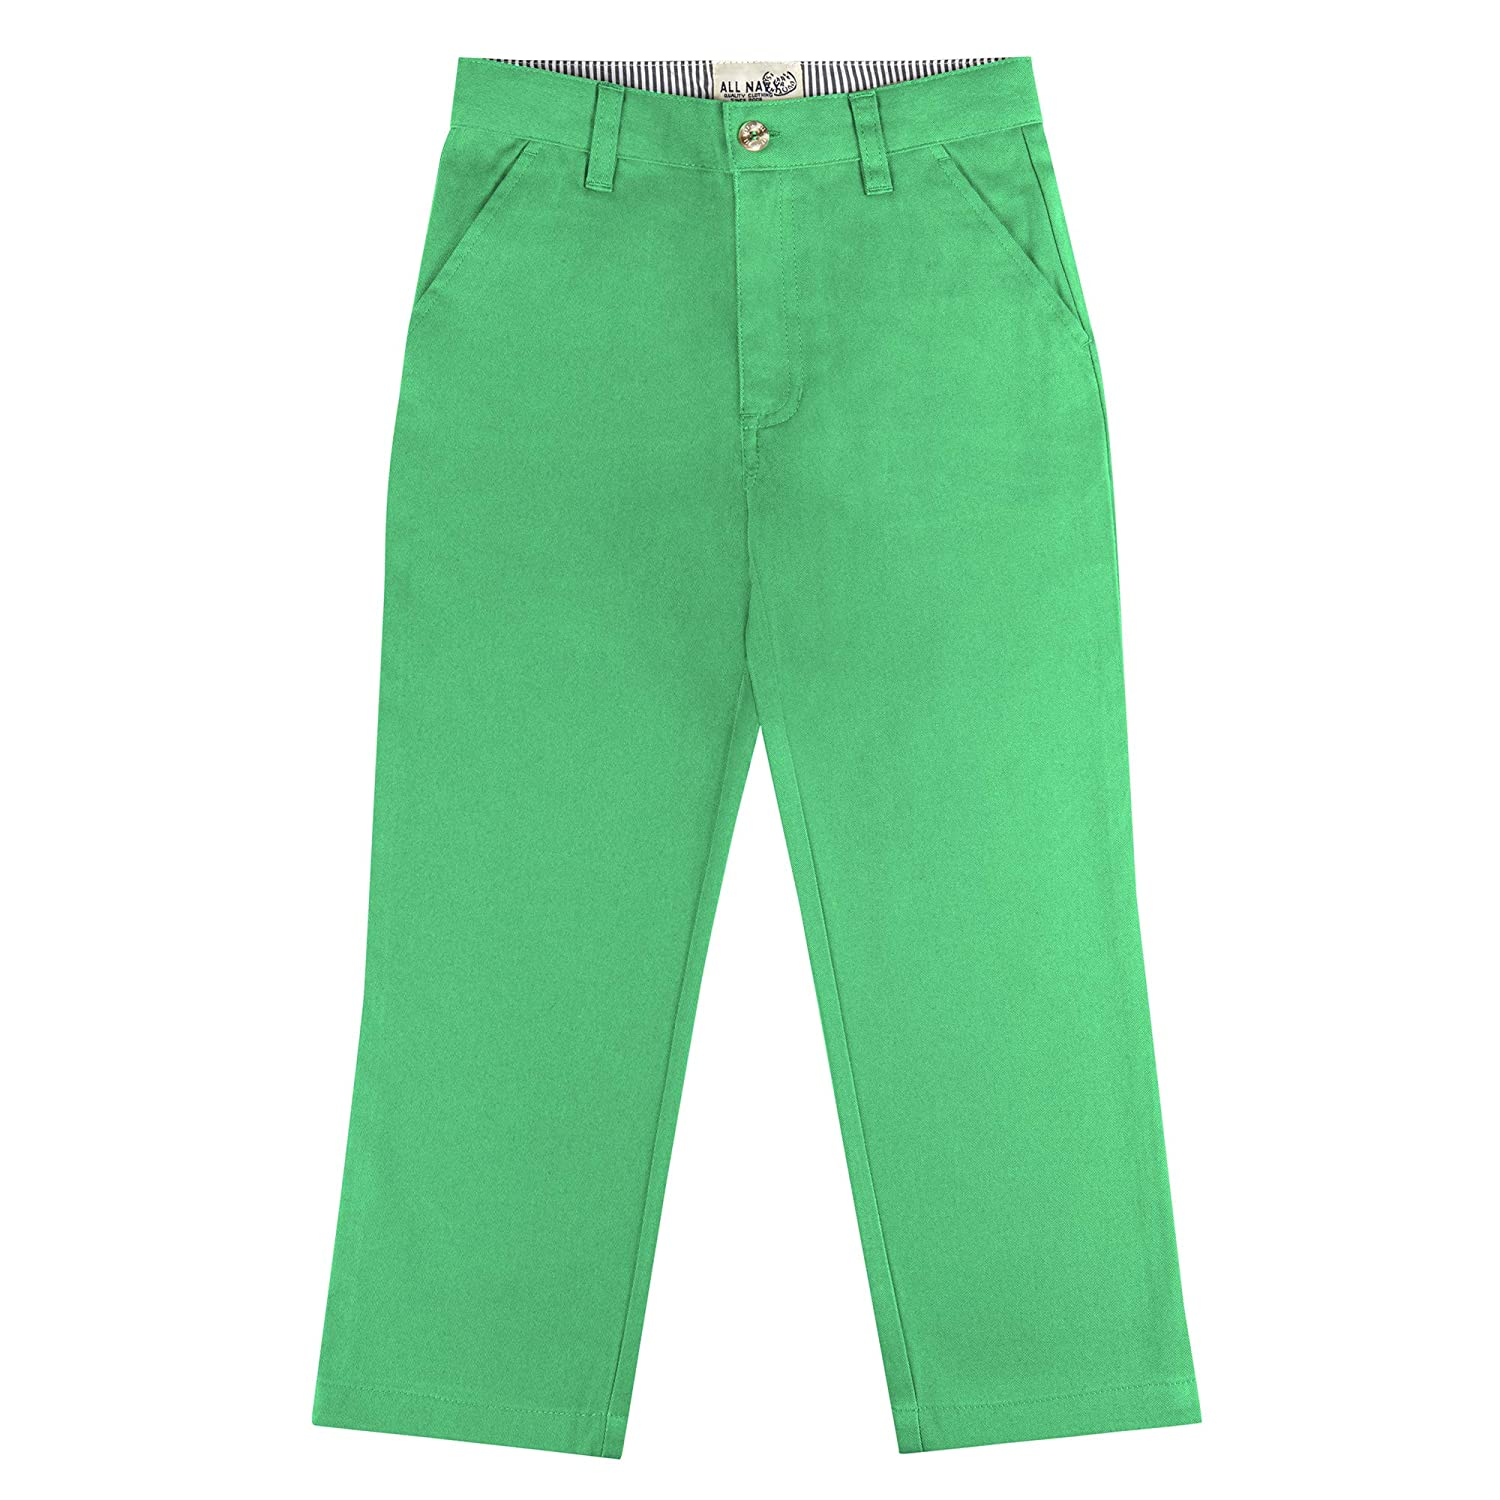 Buyless Fashion Boys Straight Cut Long Pants with Flat Front and Solid Color 21S1824